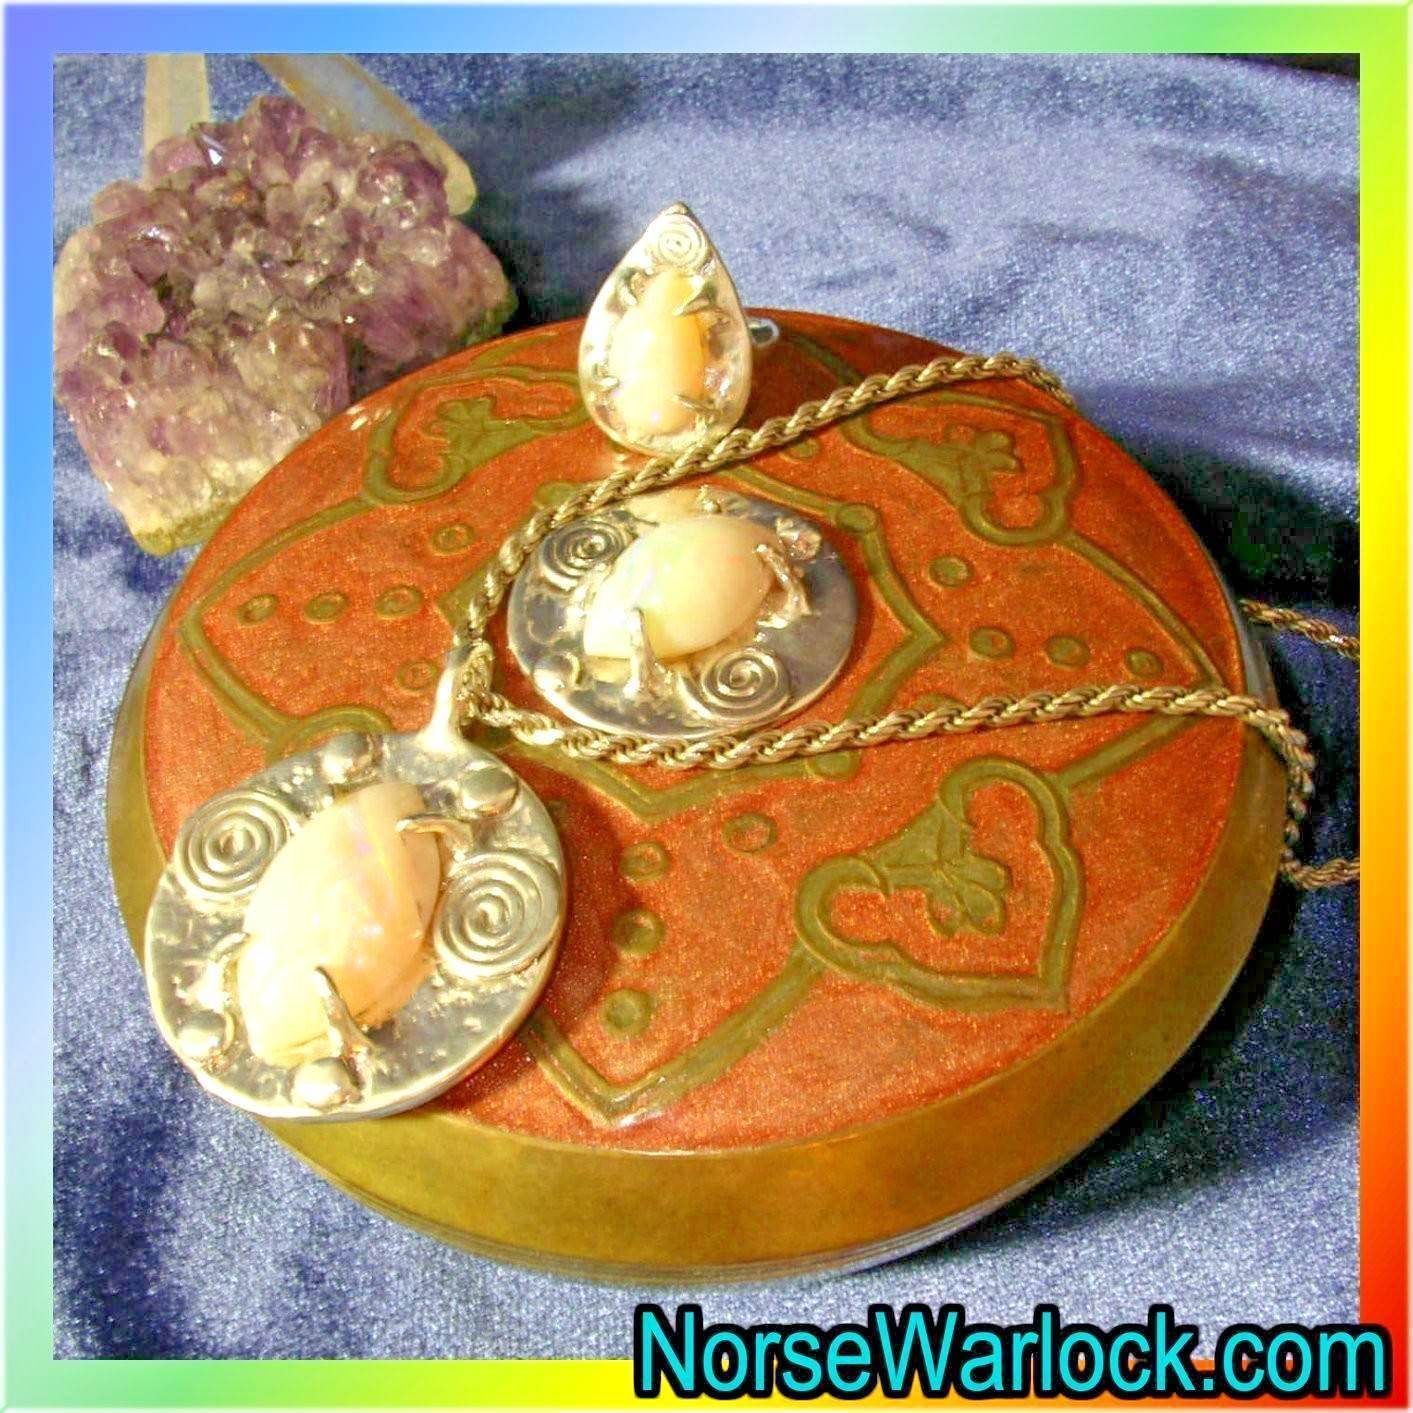 Primary image for Magick Legacy Life Giver & Protection Suite! Ring, Necklace & Charging Box! OOAK